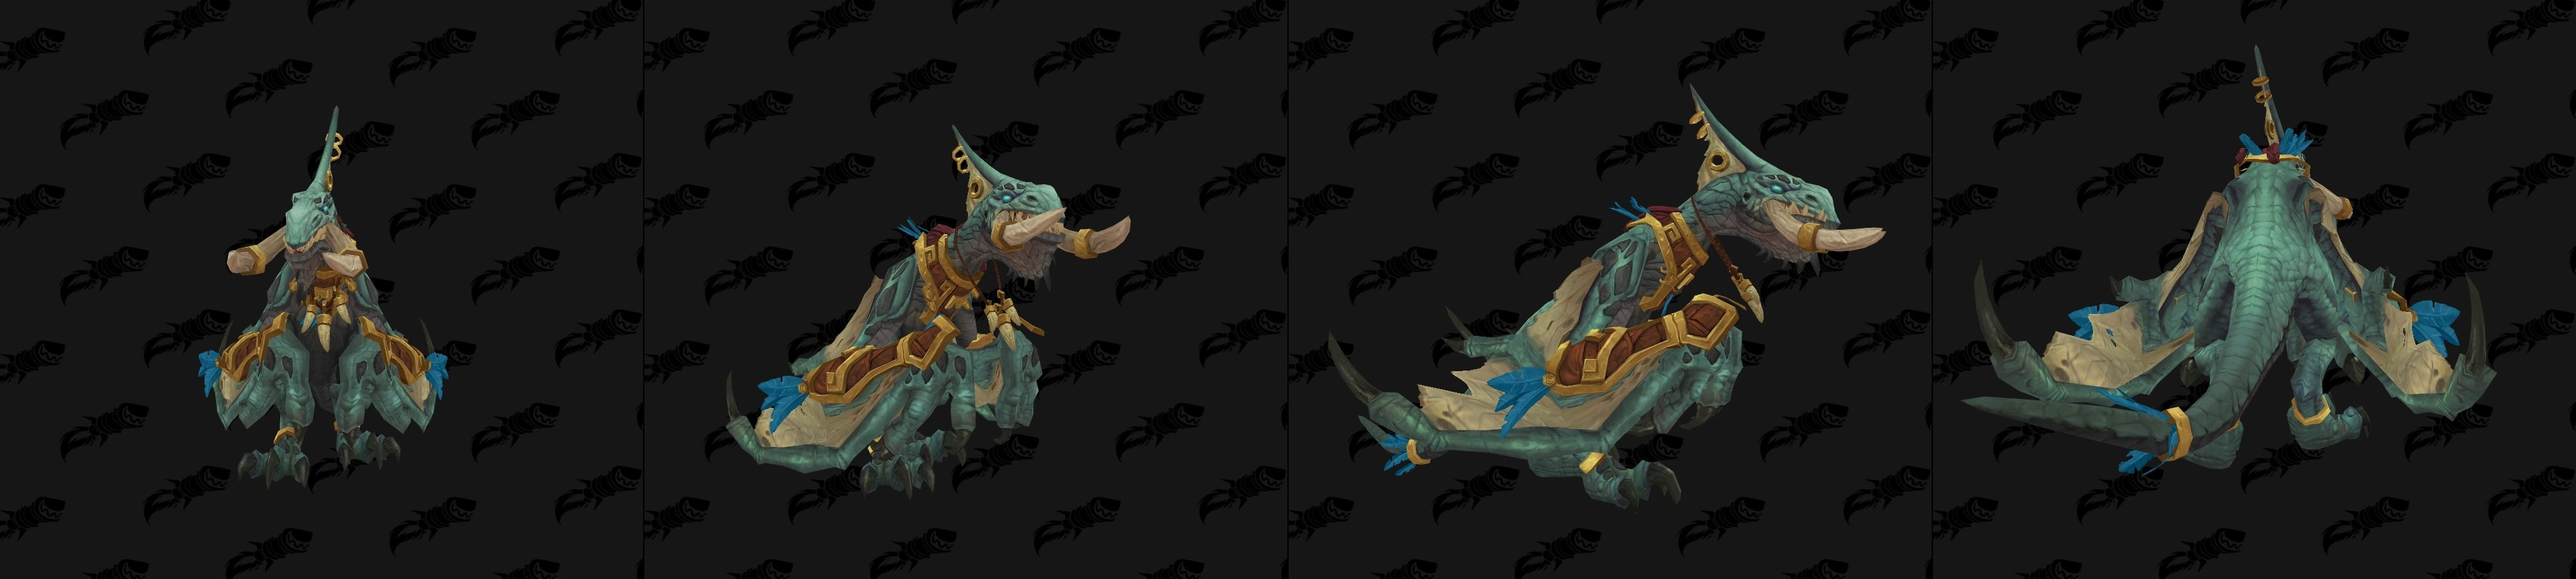 Zandalari troll male and female allied race customization options druid forms nvjuhfo Choice Image